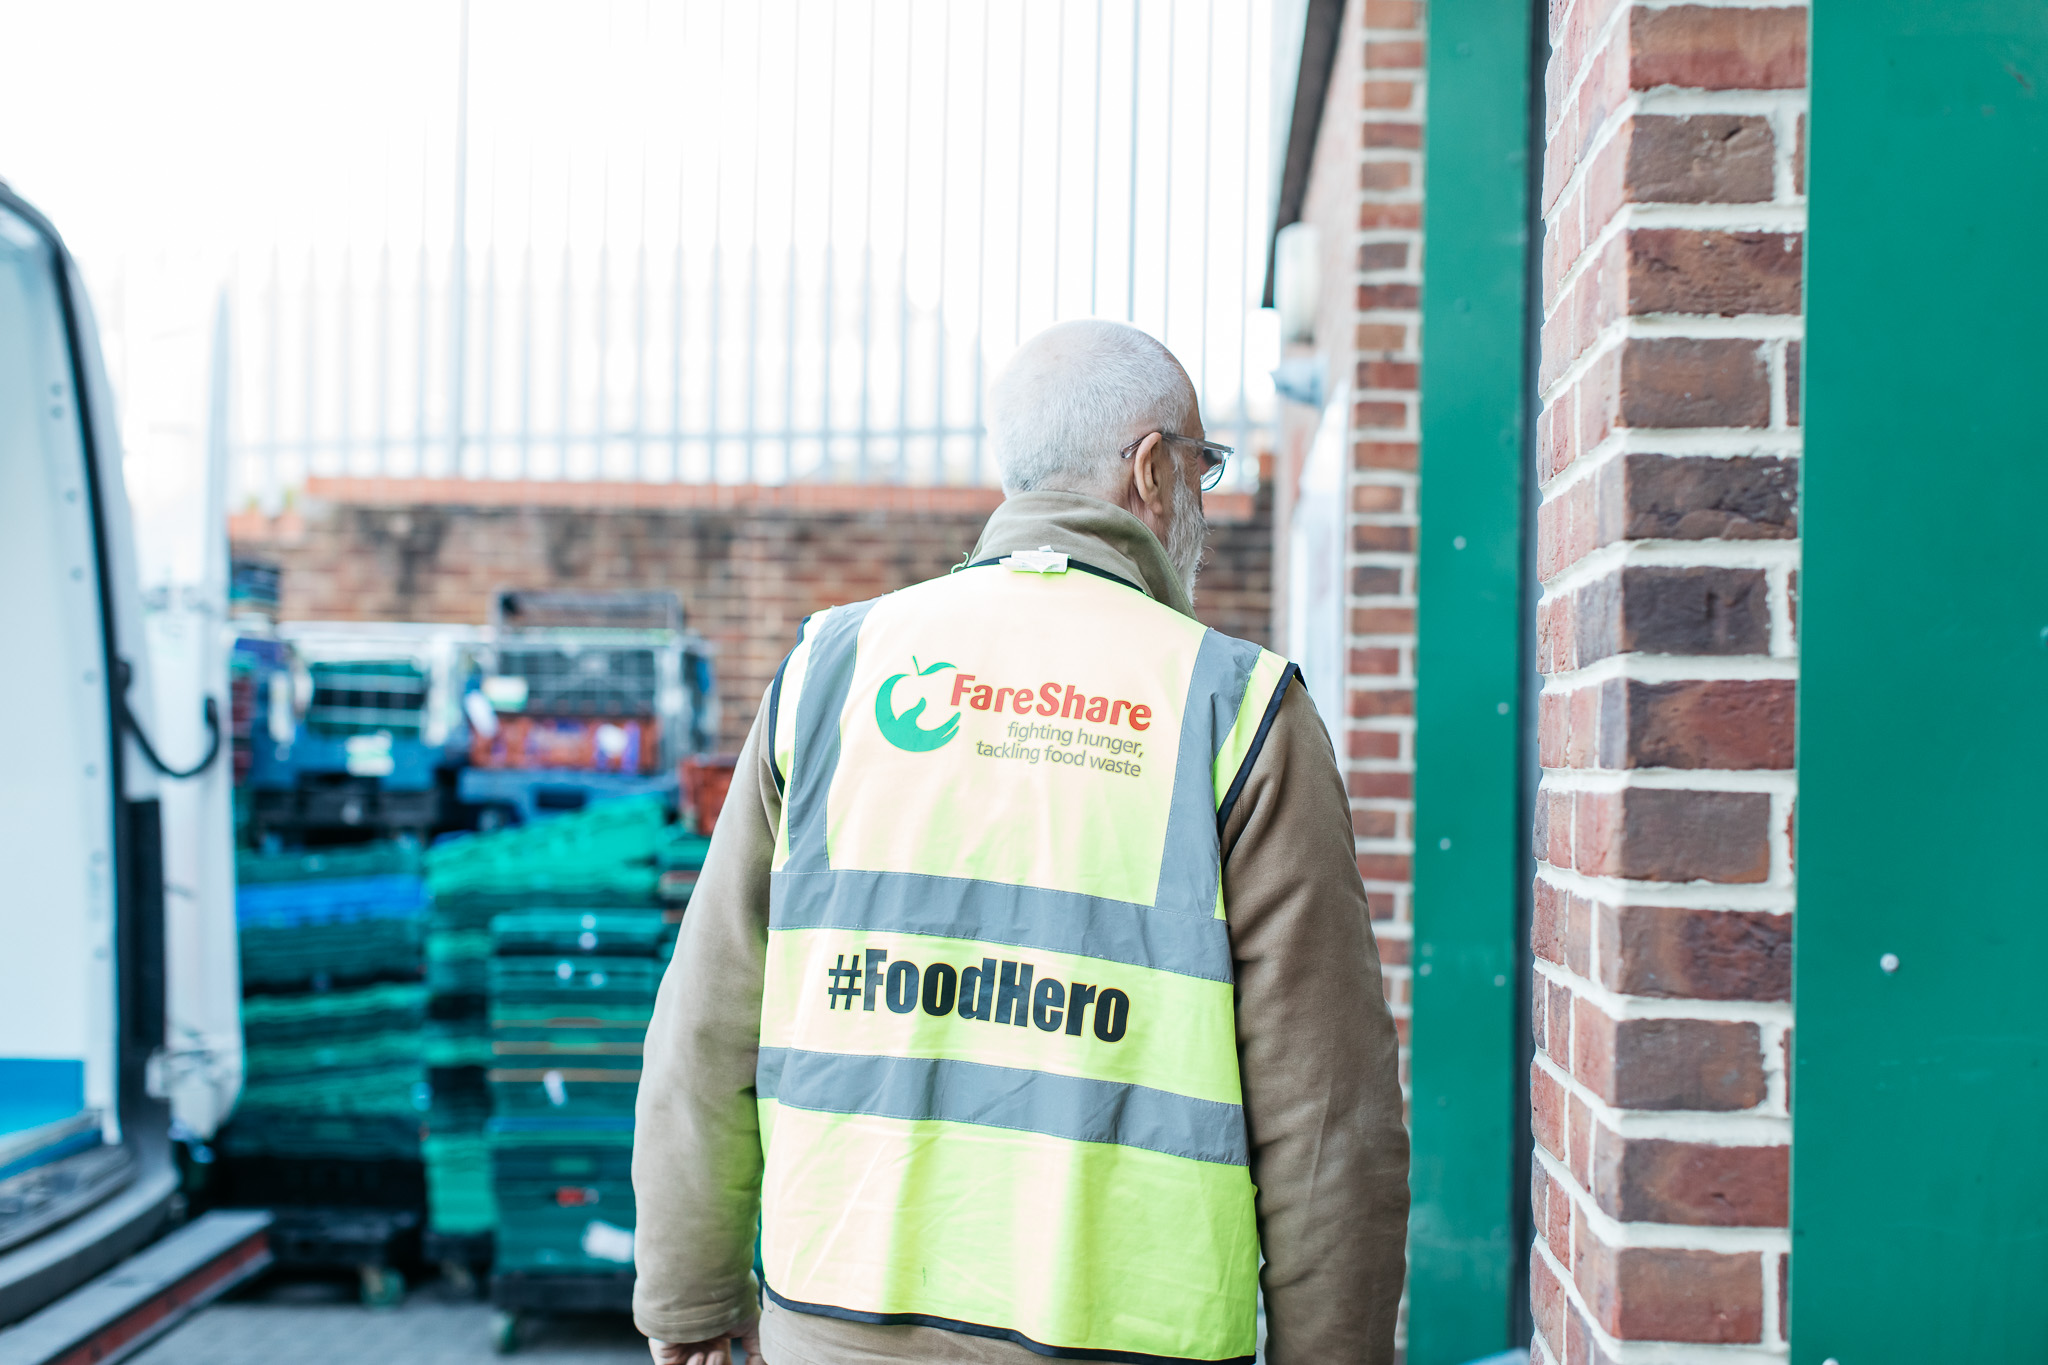 Image for Holland's partners with FareShare